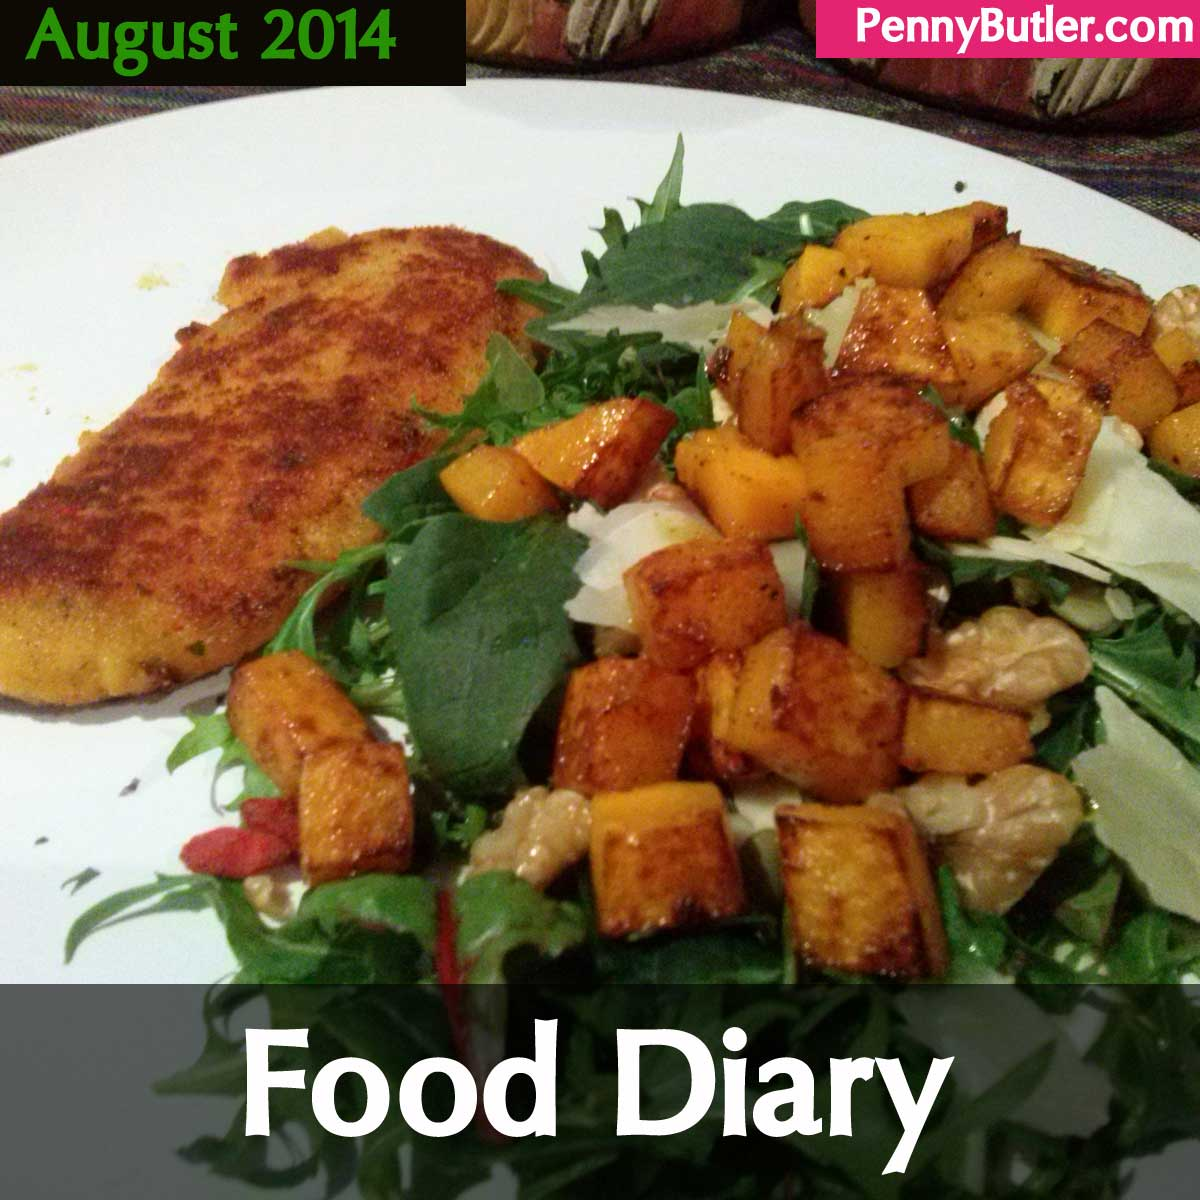 August Meals [Food Diary]